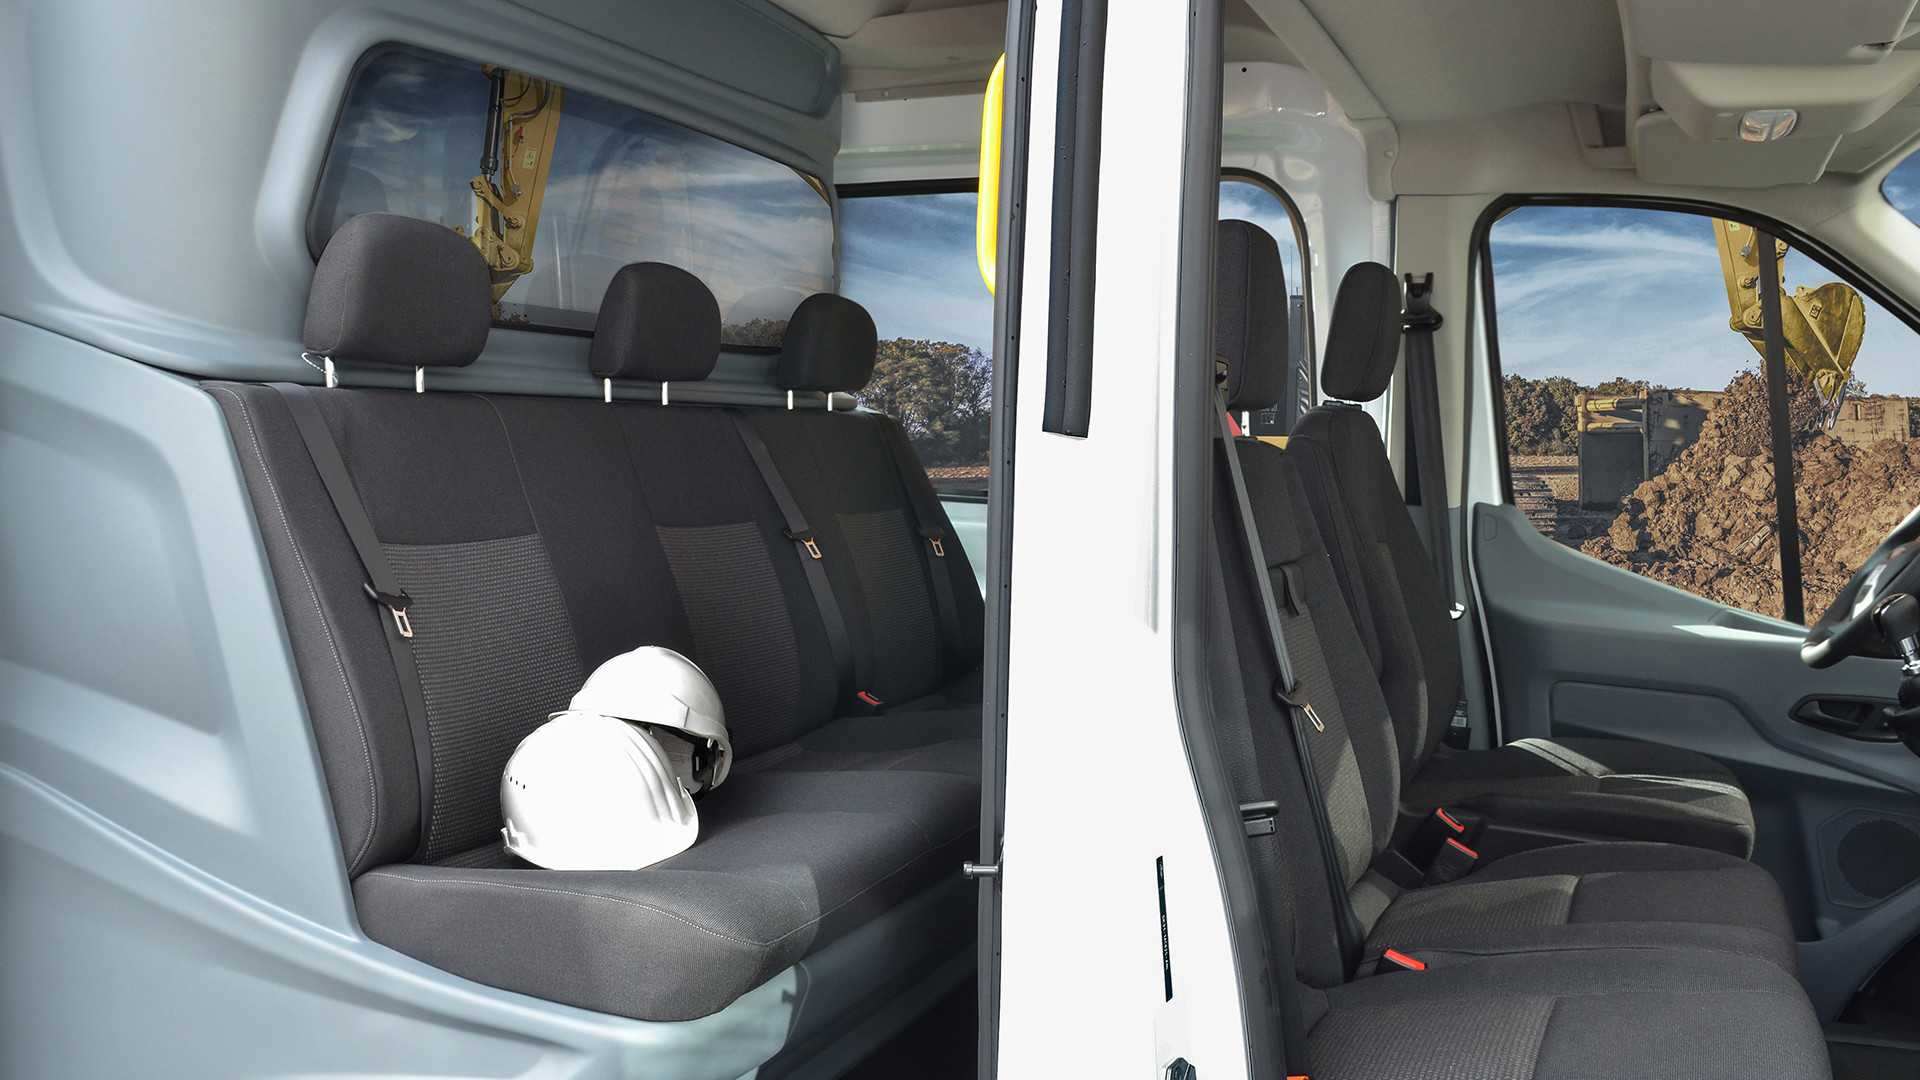 Ford Transit Crew Van reviewed by Roush Engineering